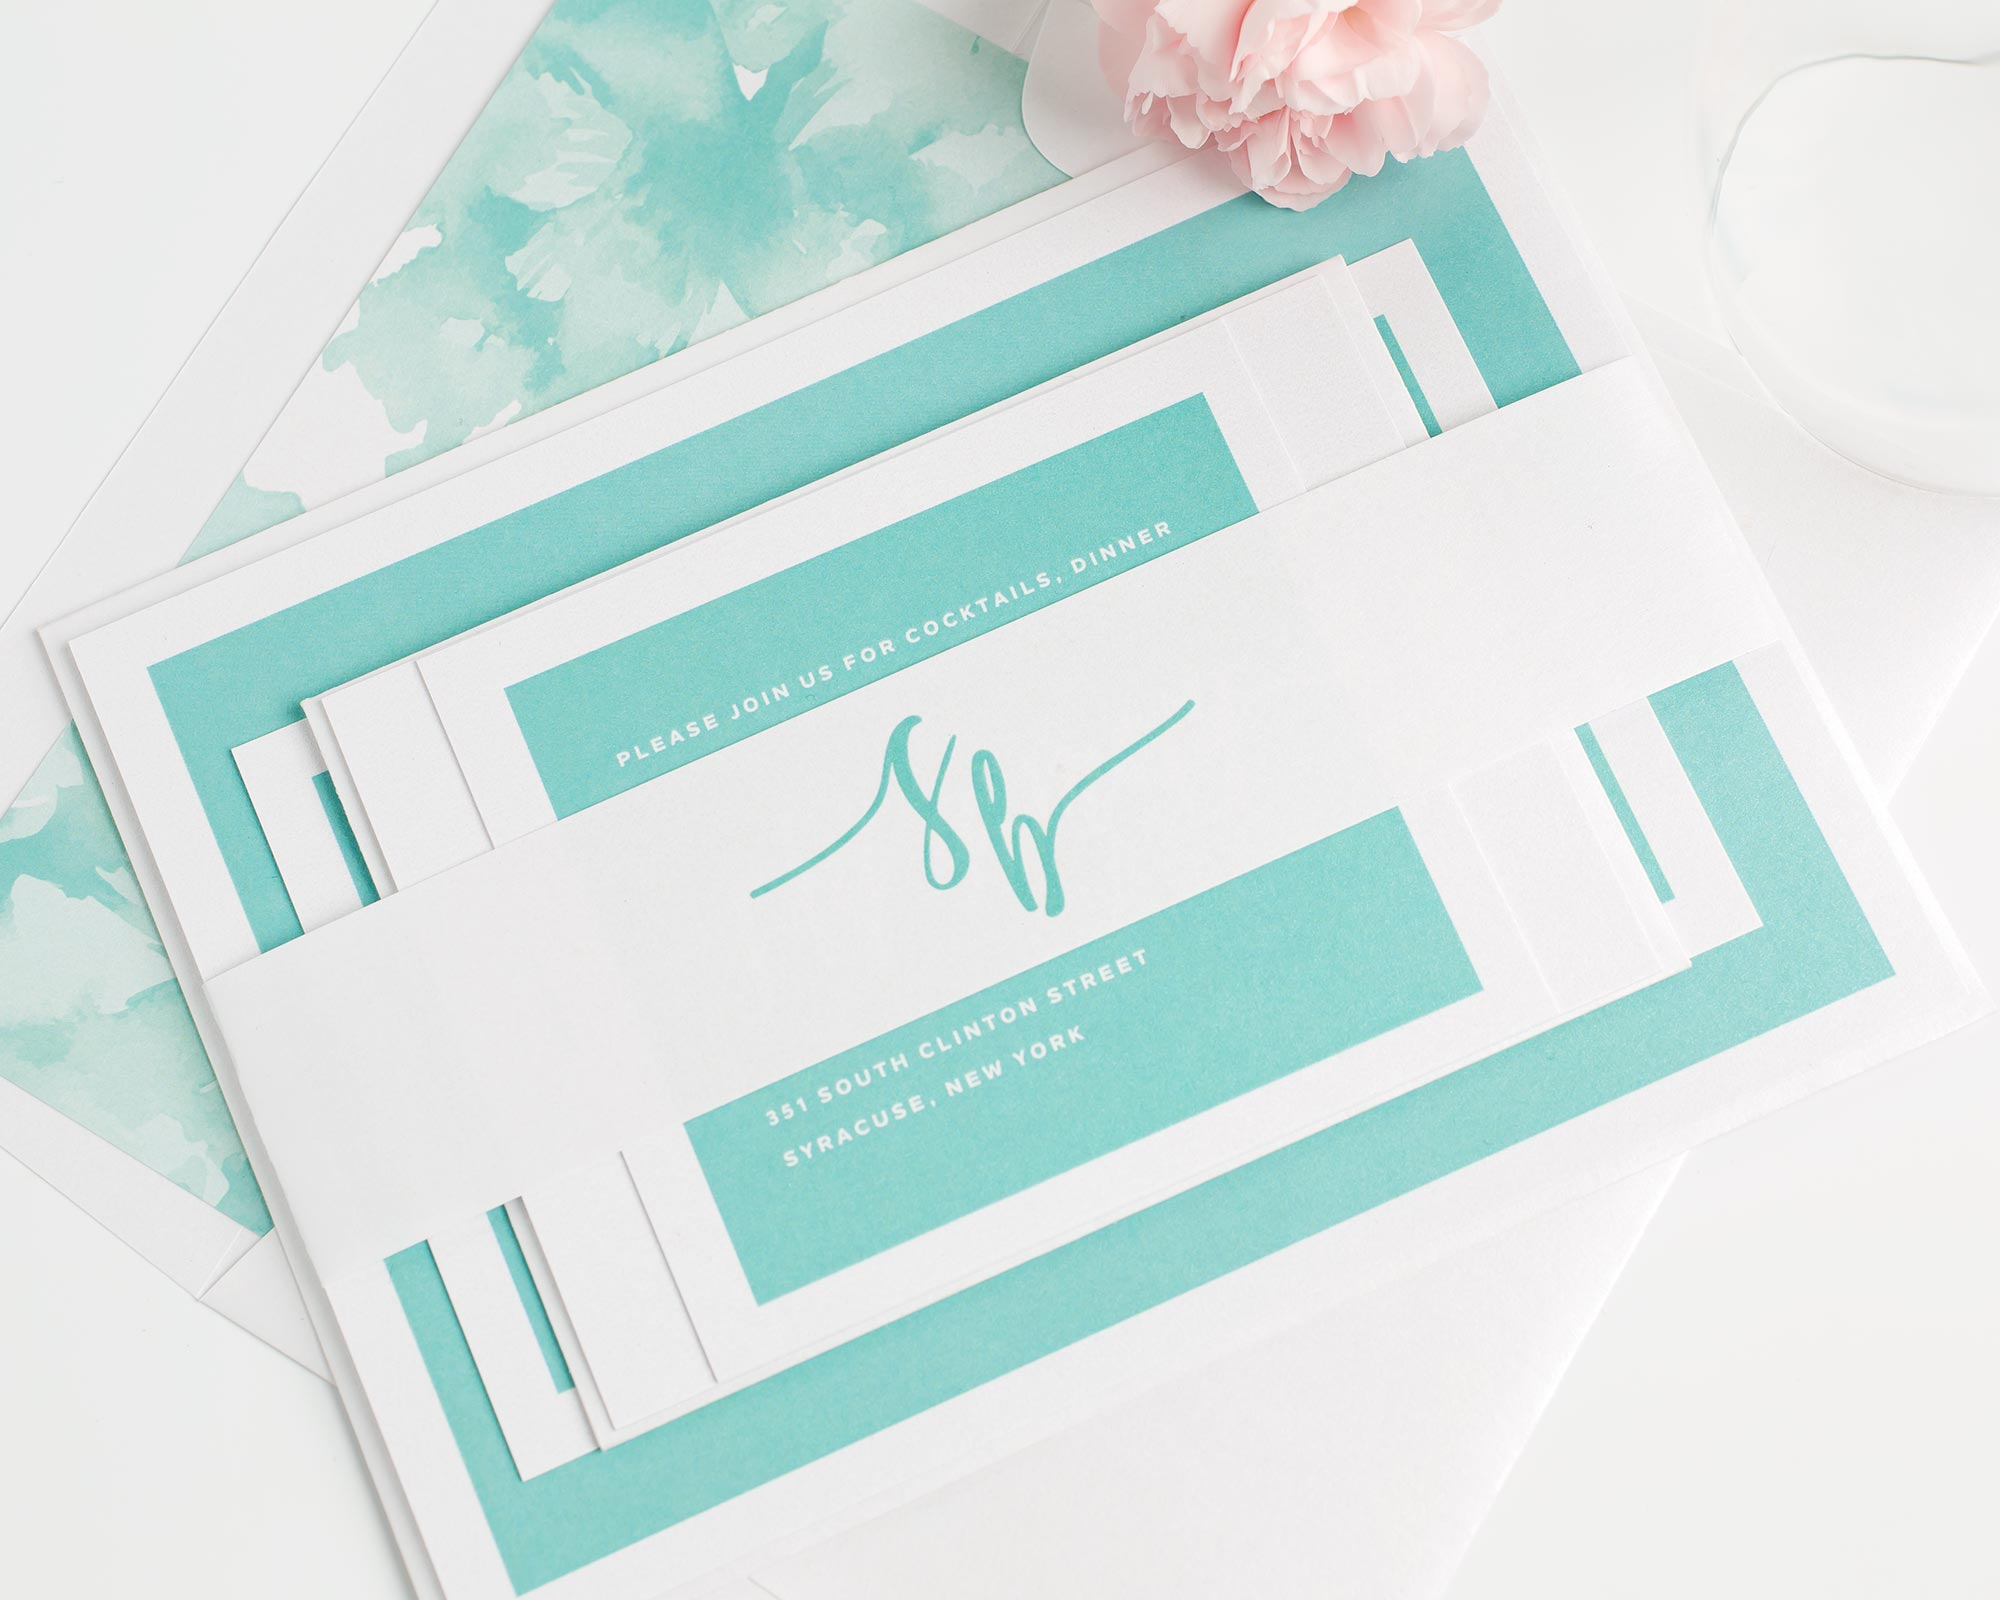 edible wedding invitation cards 28 images a wedding planner s